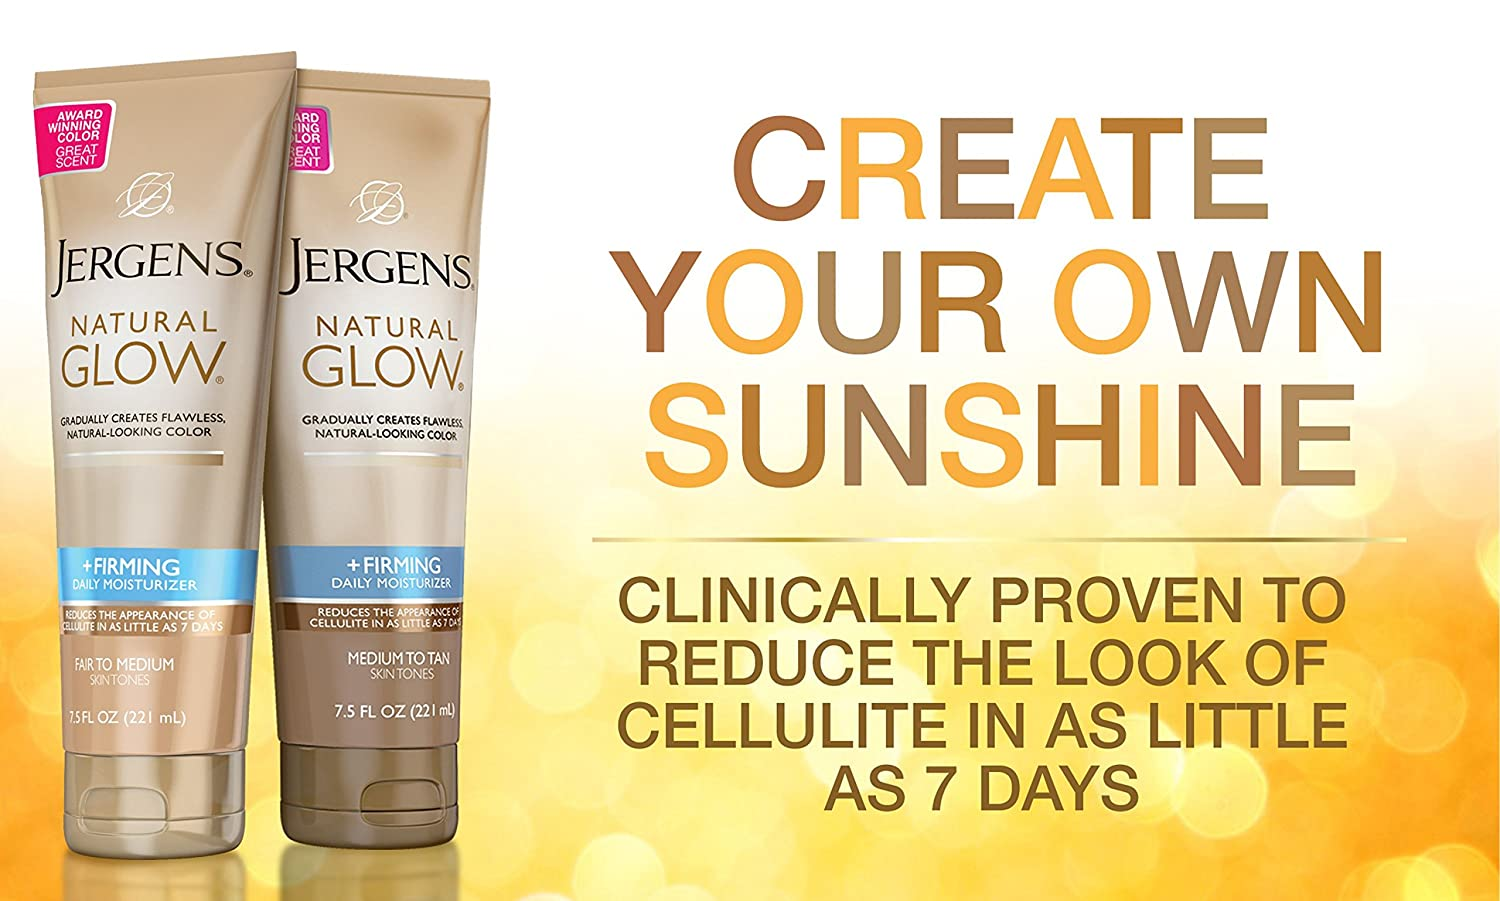 Natural Glow +Firming Daily Moisturizer by jergens #12